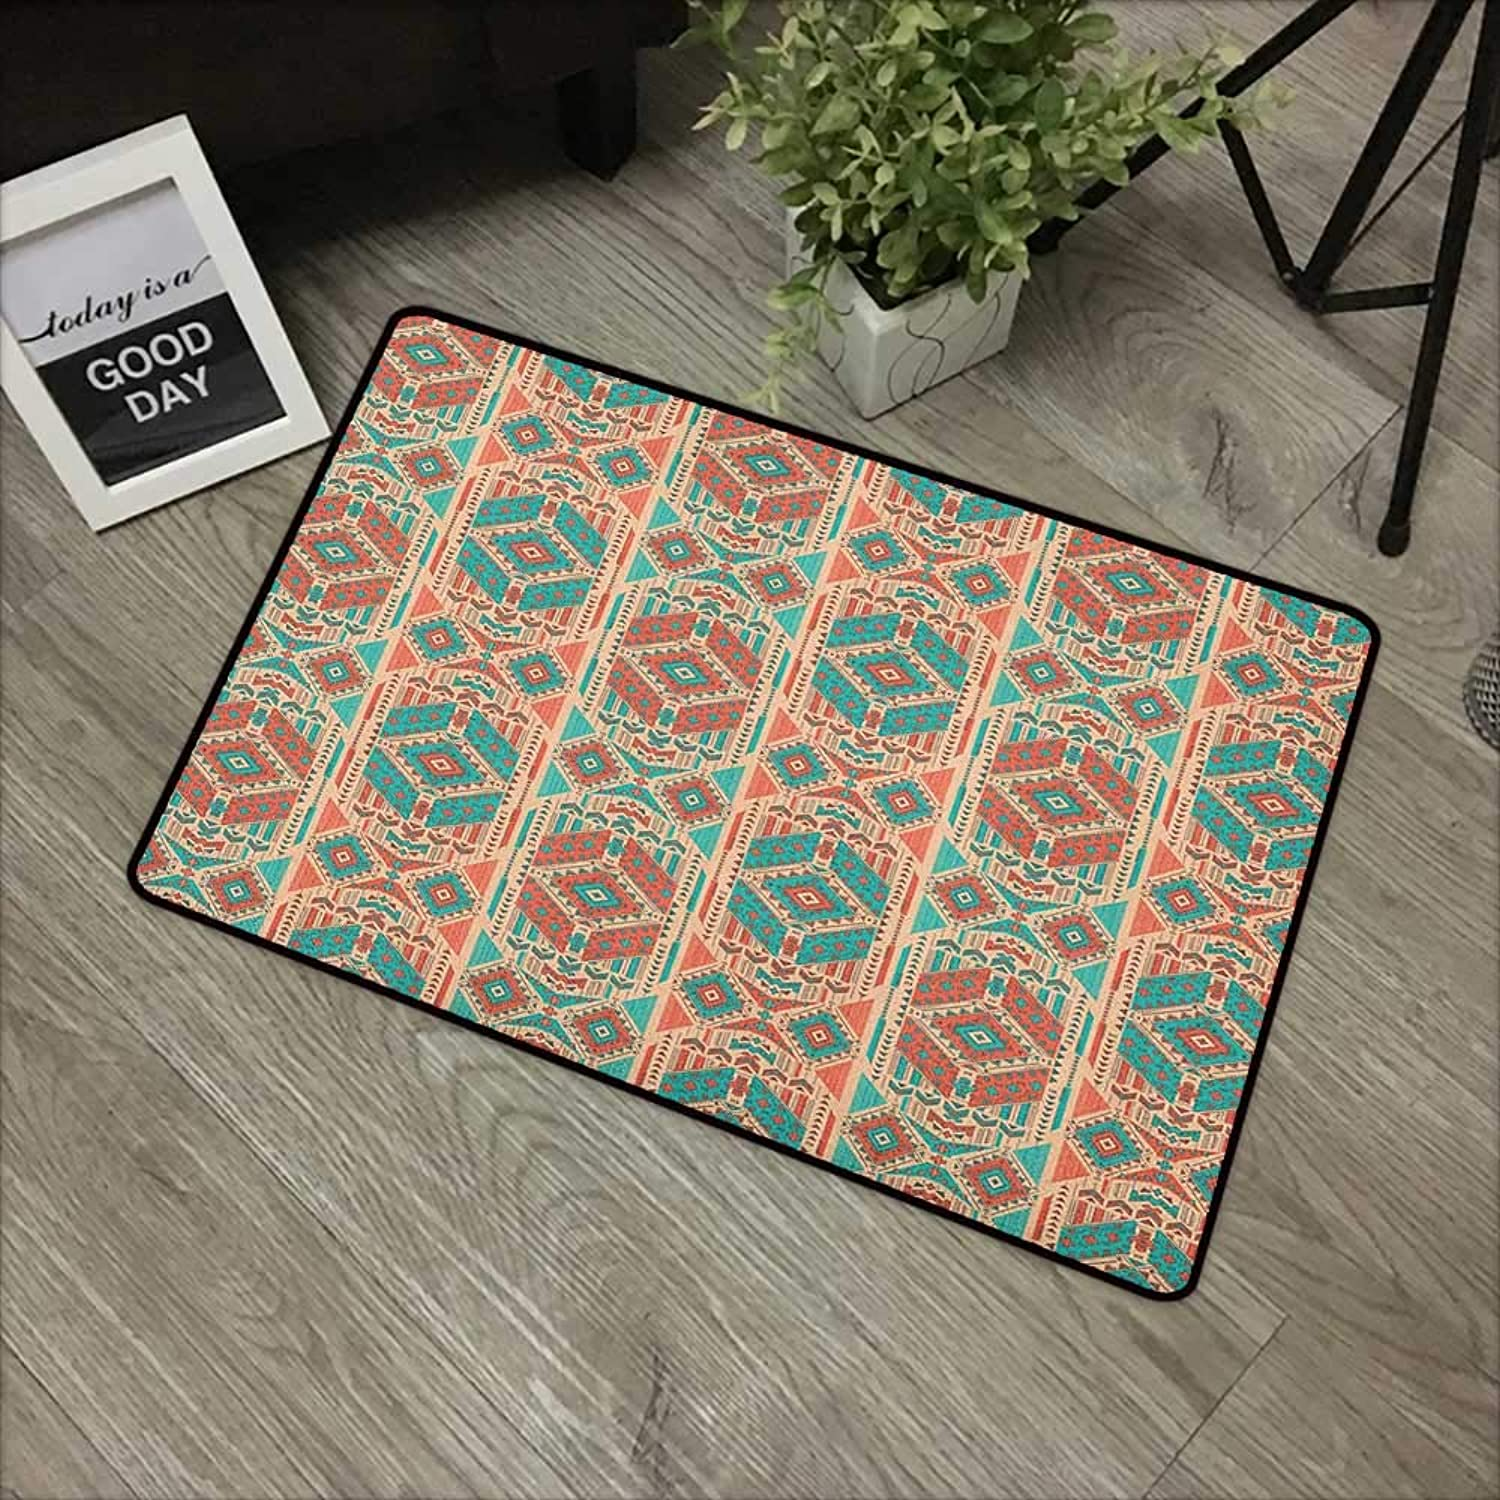 Living room door mat W35 x L59 INCH Mexican,Vintage Pastel Toned Geometric Composition American Motifs, Pale Sea Green Coral Dark Coral Easy to clean, no deformation, no fading Non-slip Door Mat Carpe